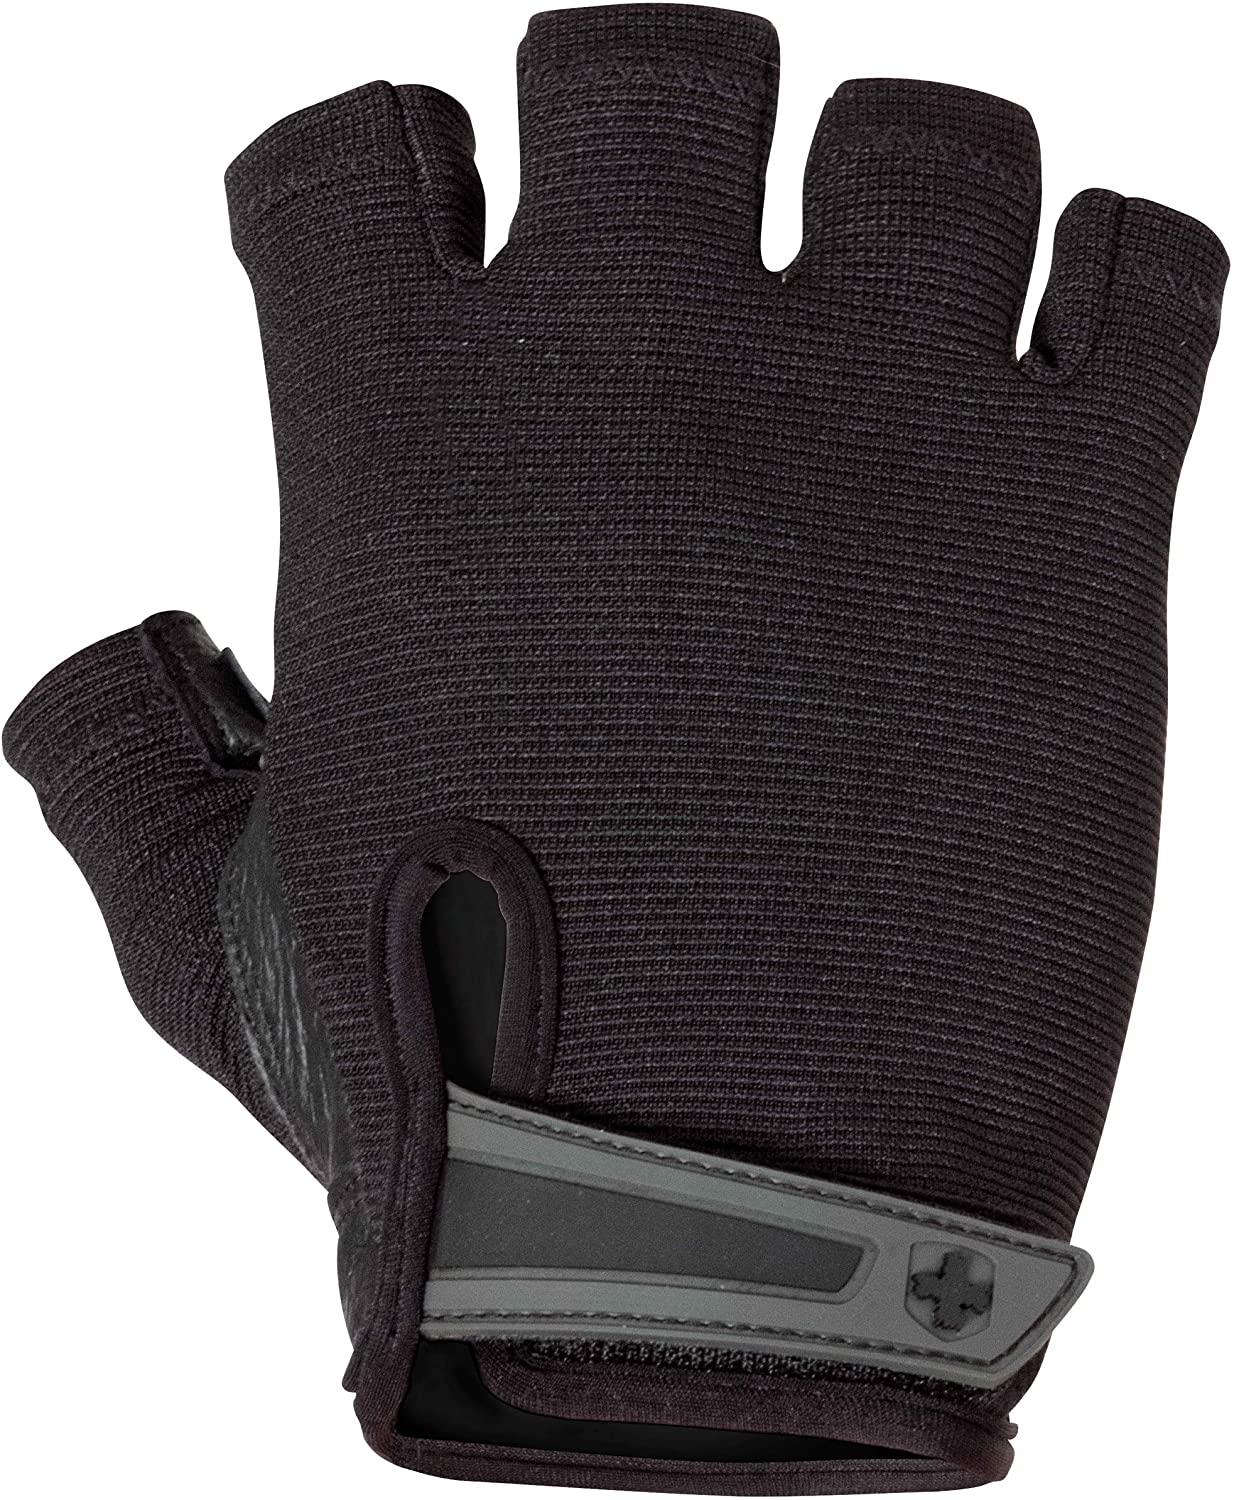 Harbinger Power Non-Wristwrap Weightlifting Gloves with StretchBack Mesh and Leather Palm (Pair), Black, Large, Large (Fits 8 - 8.5 Inches) : Exercise Gloves : Sports & Outdoors